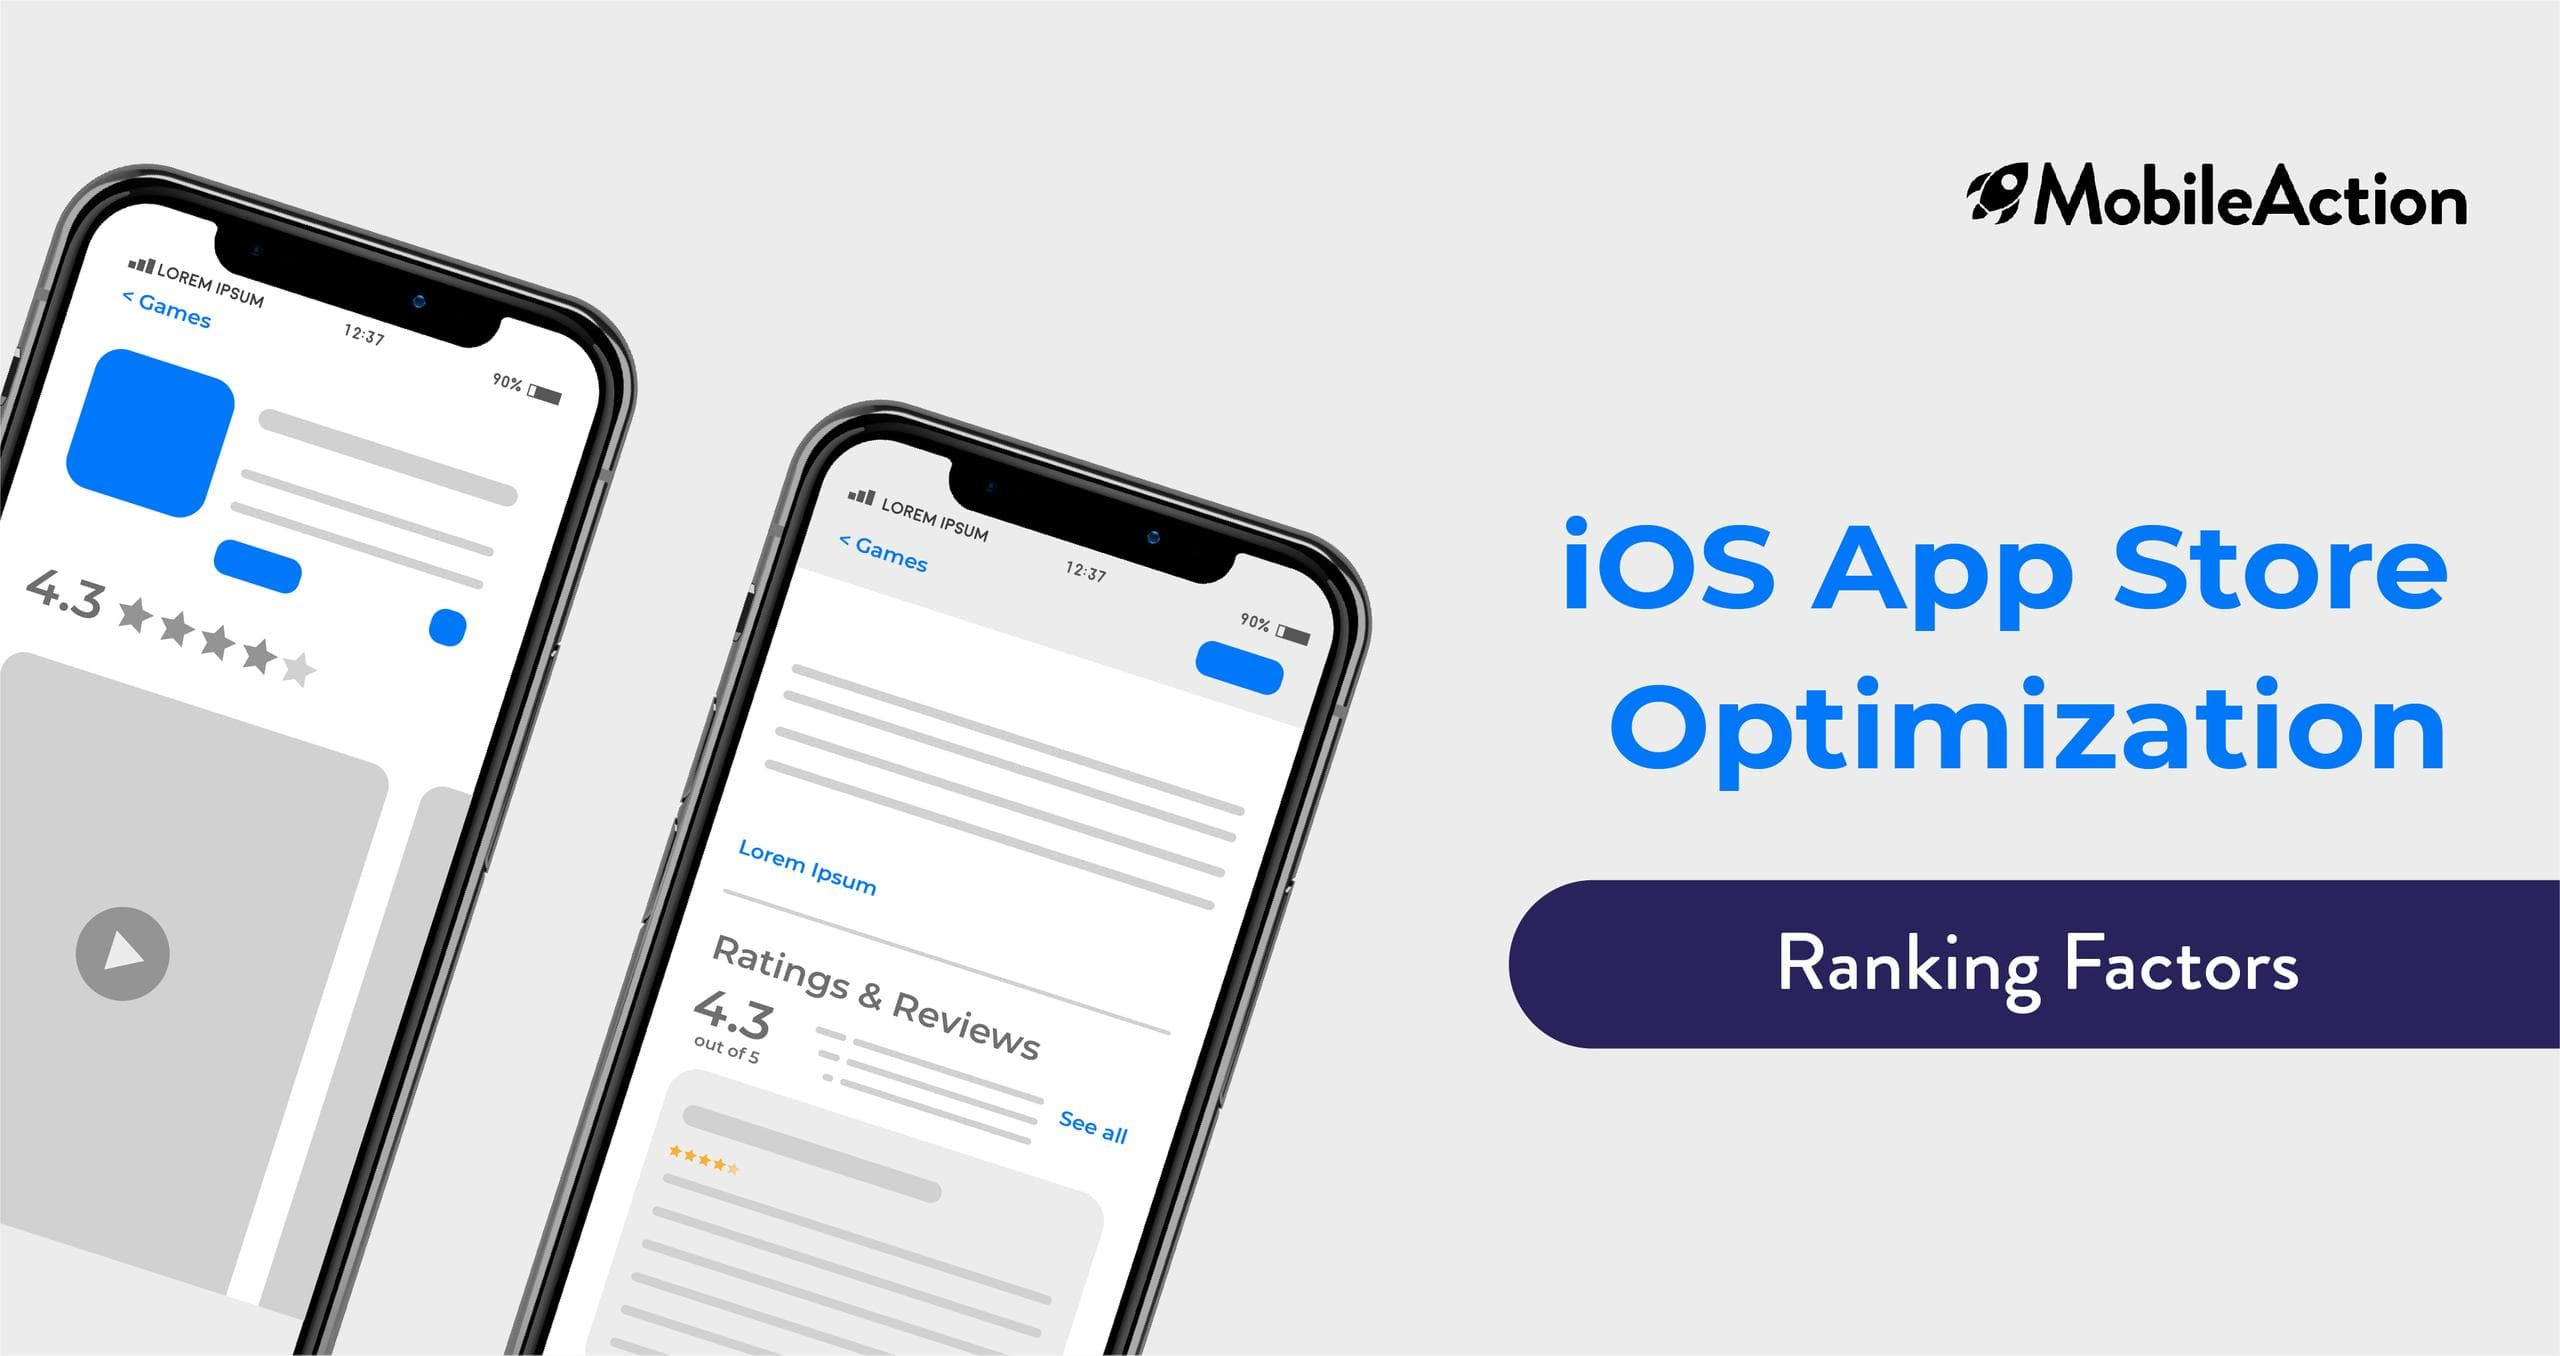 IOS App Store Optimization Ranking Factors